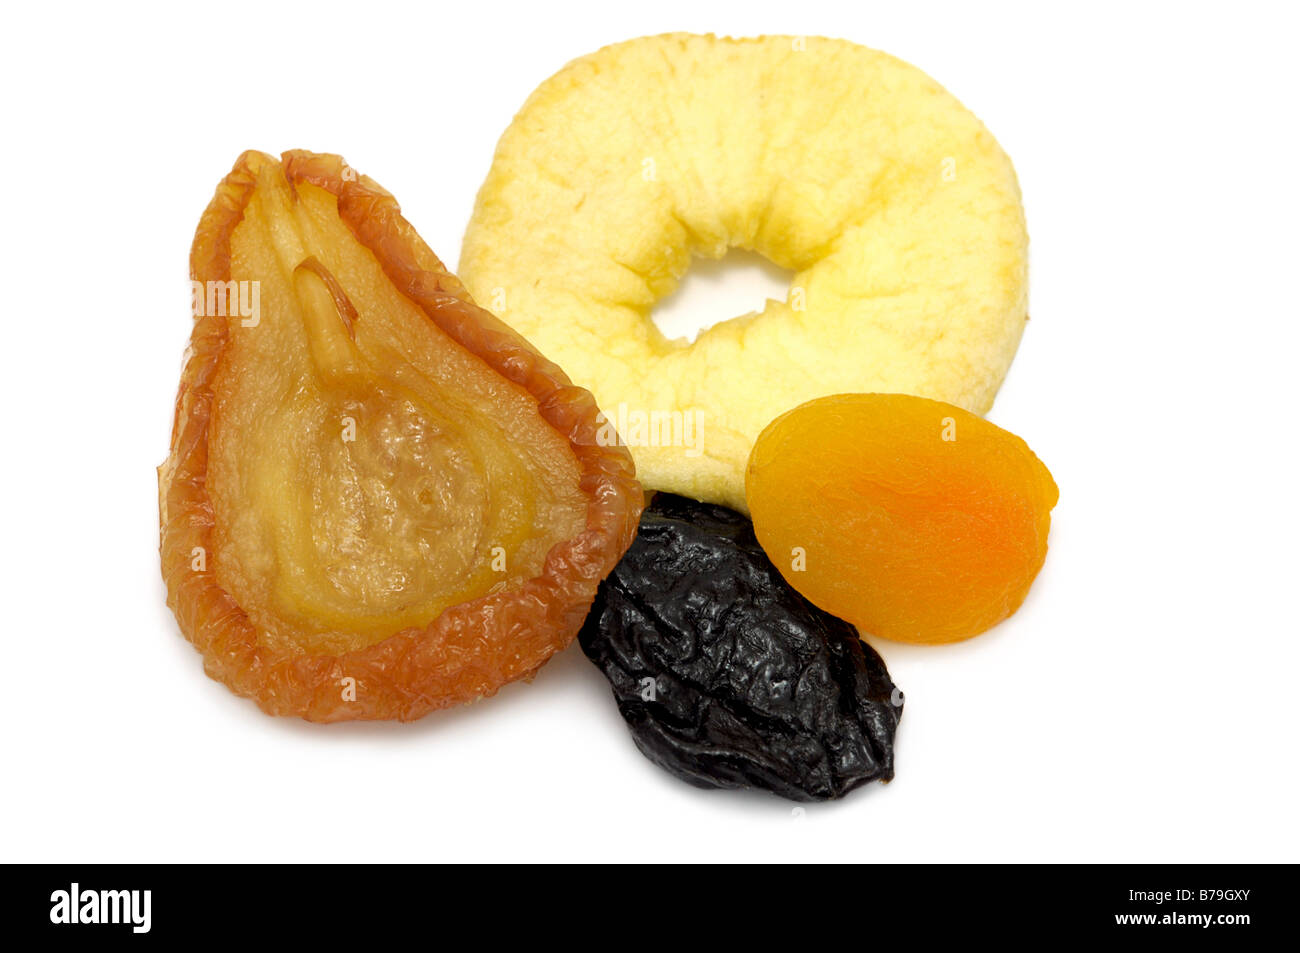 Mixed dried fruit, Pear, Apple Ring, Prune, Apricot - Stock Image